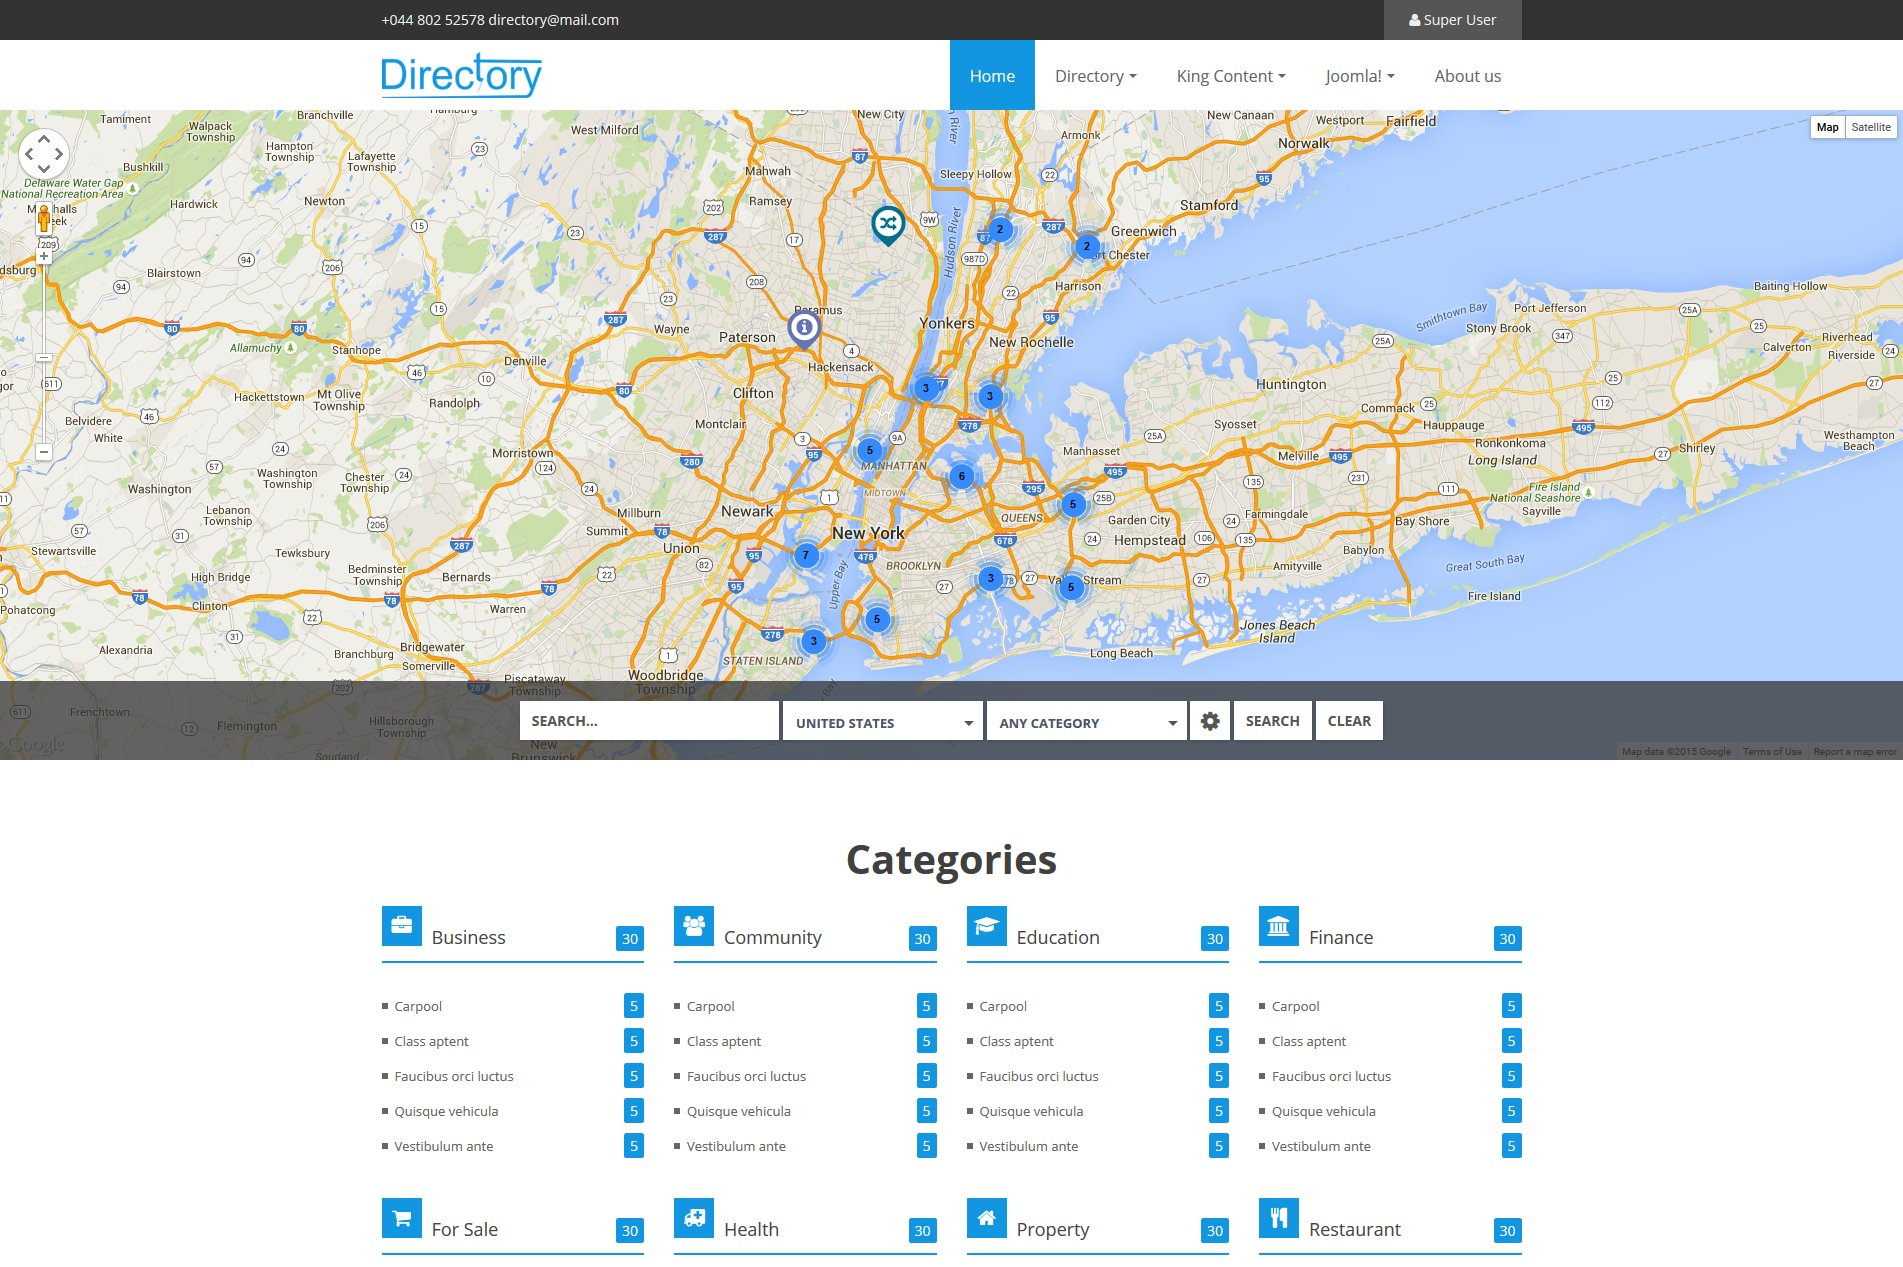 Directory listing joomla template joomla themes creative market cheaphphosting Image collections